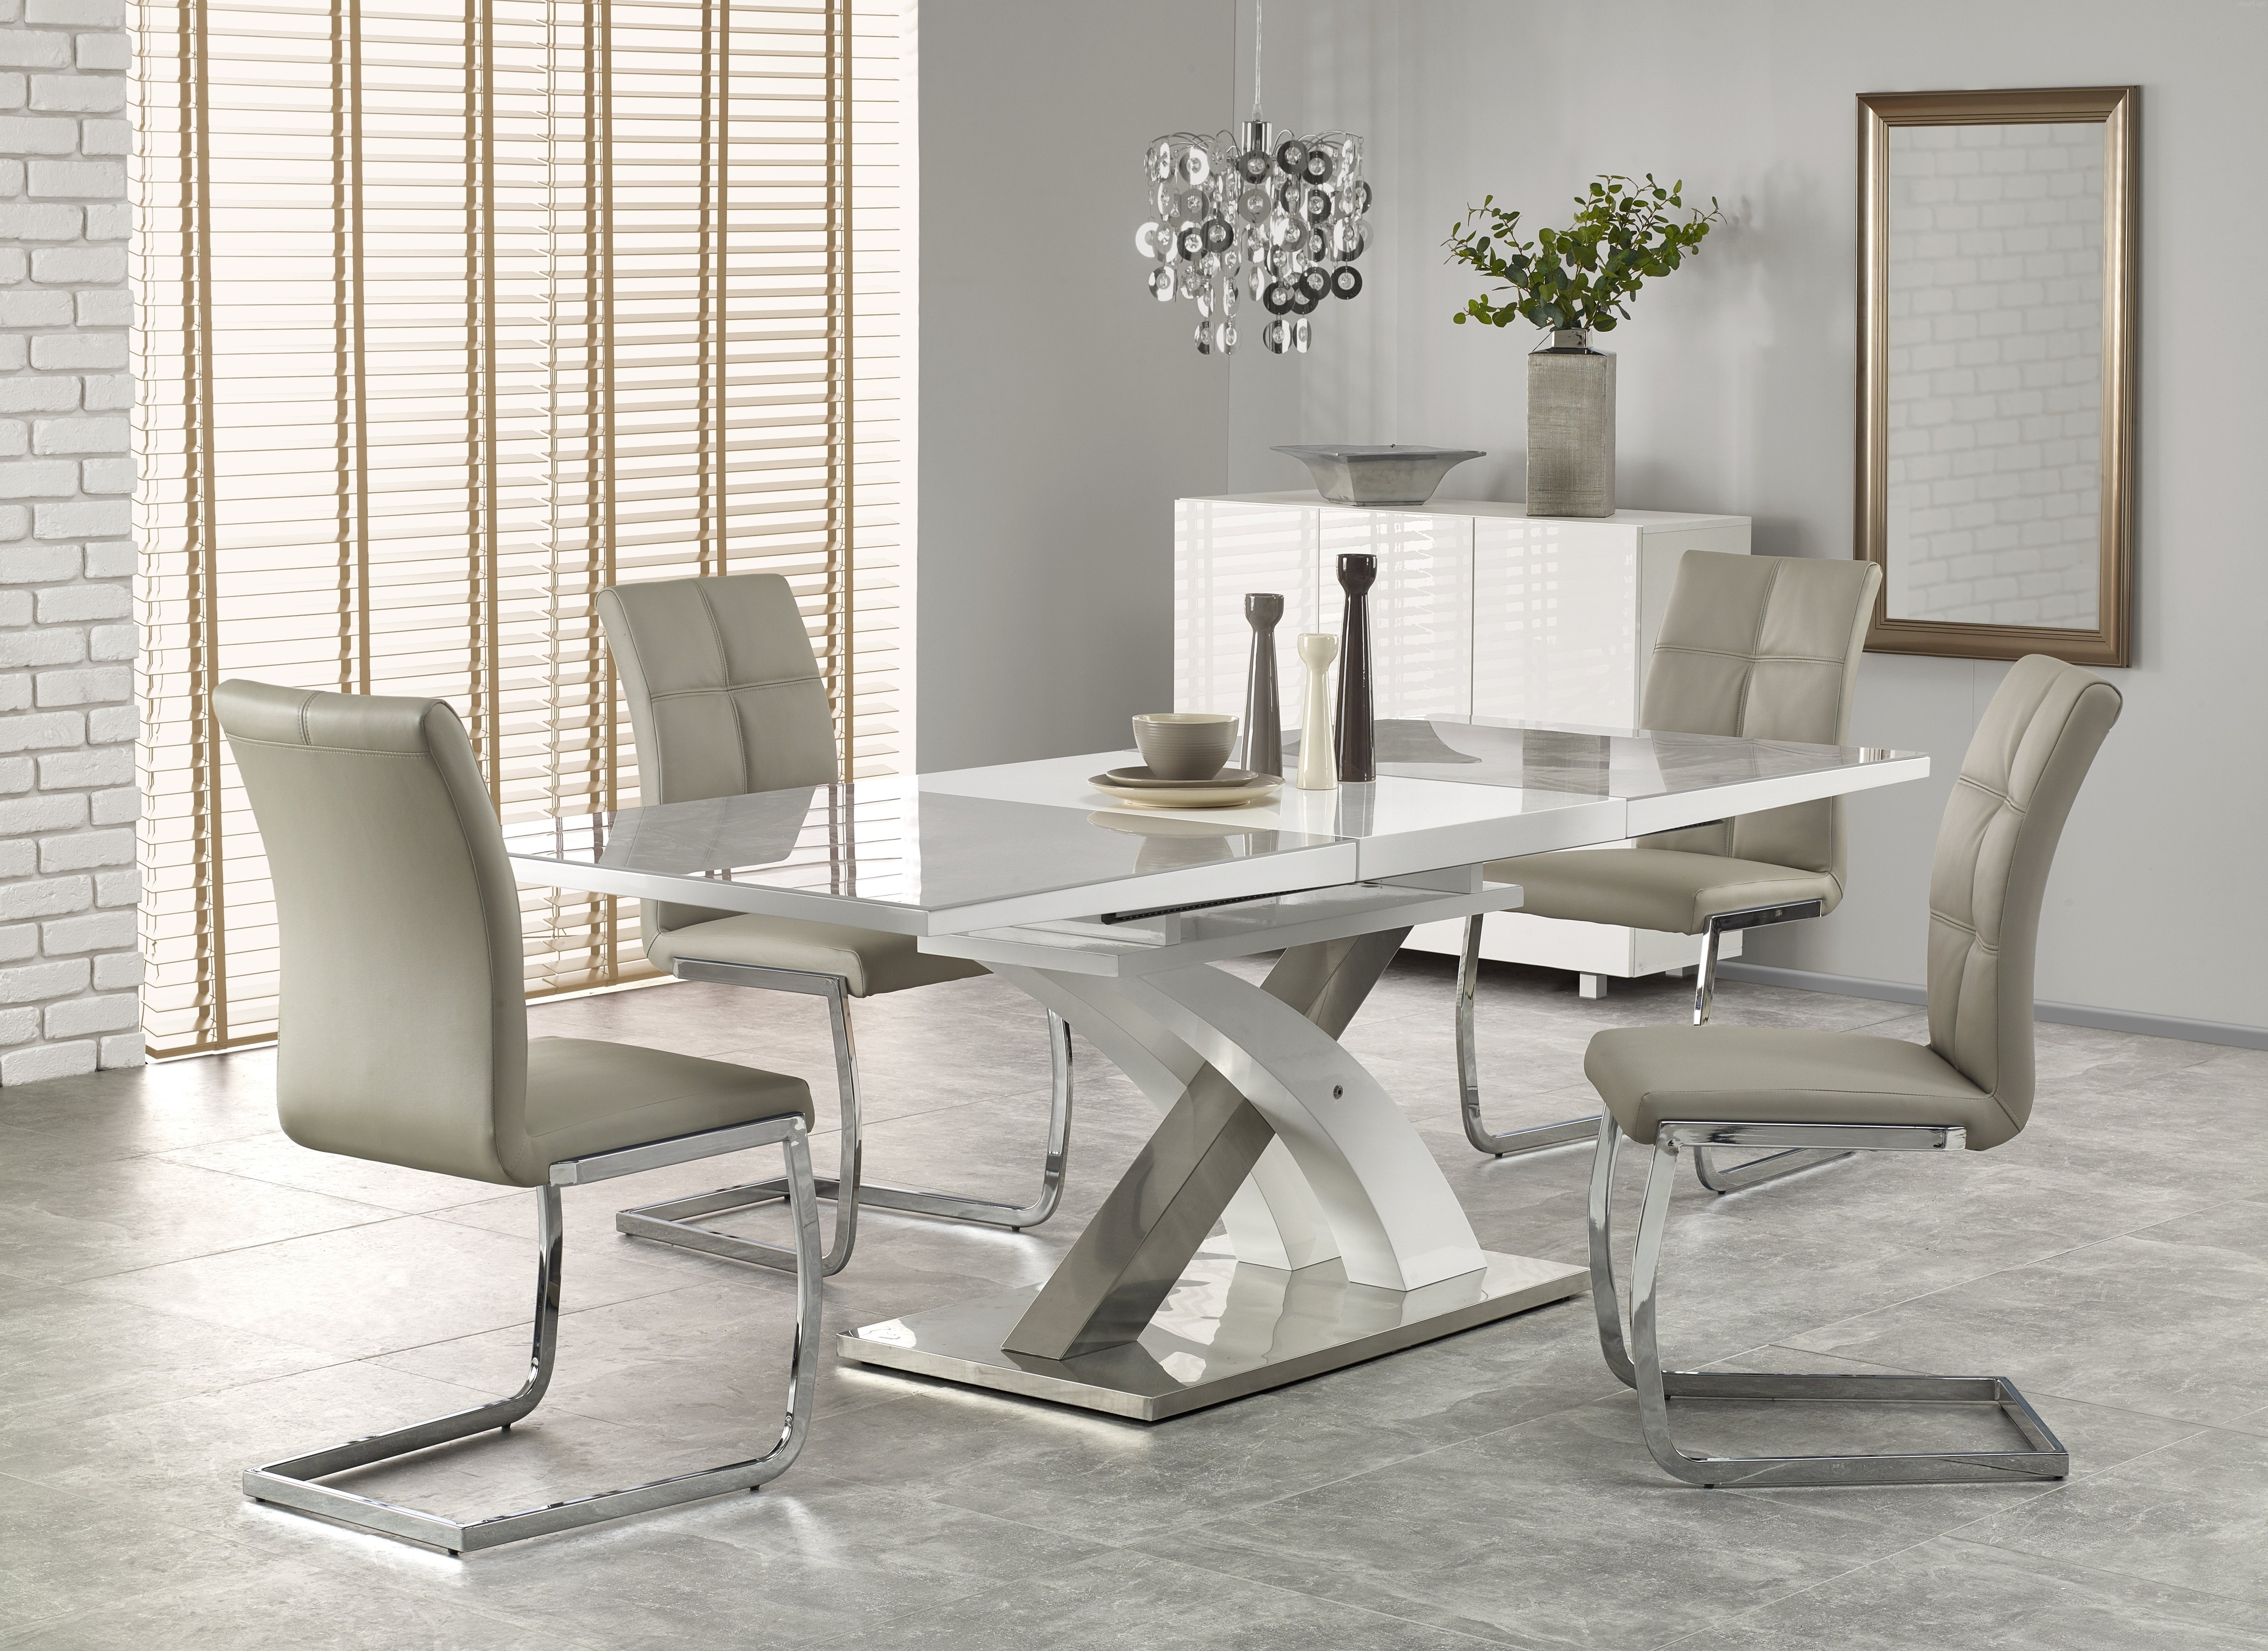 Glass Folding Dining Tables Inside Well Known Buy Harmony High Gloss White Grey Glass Extendable Dining Table (View 13 of 25)